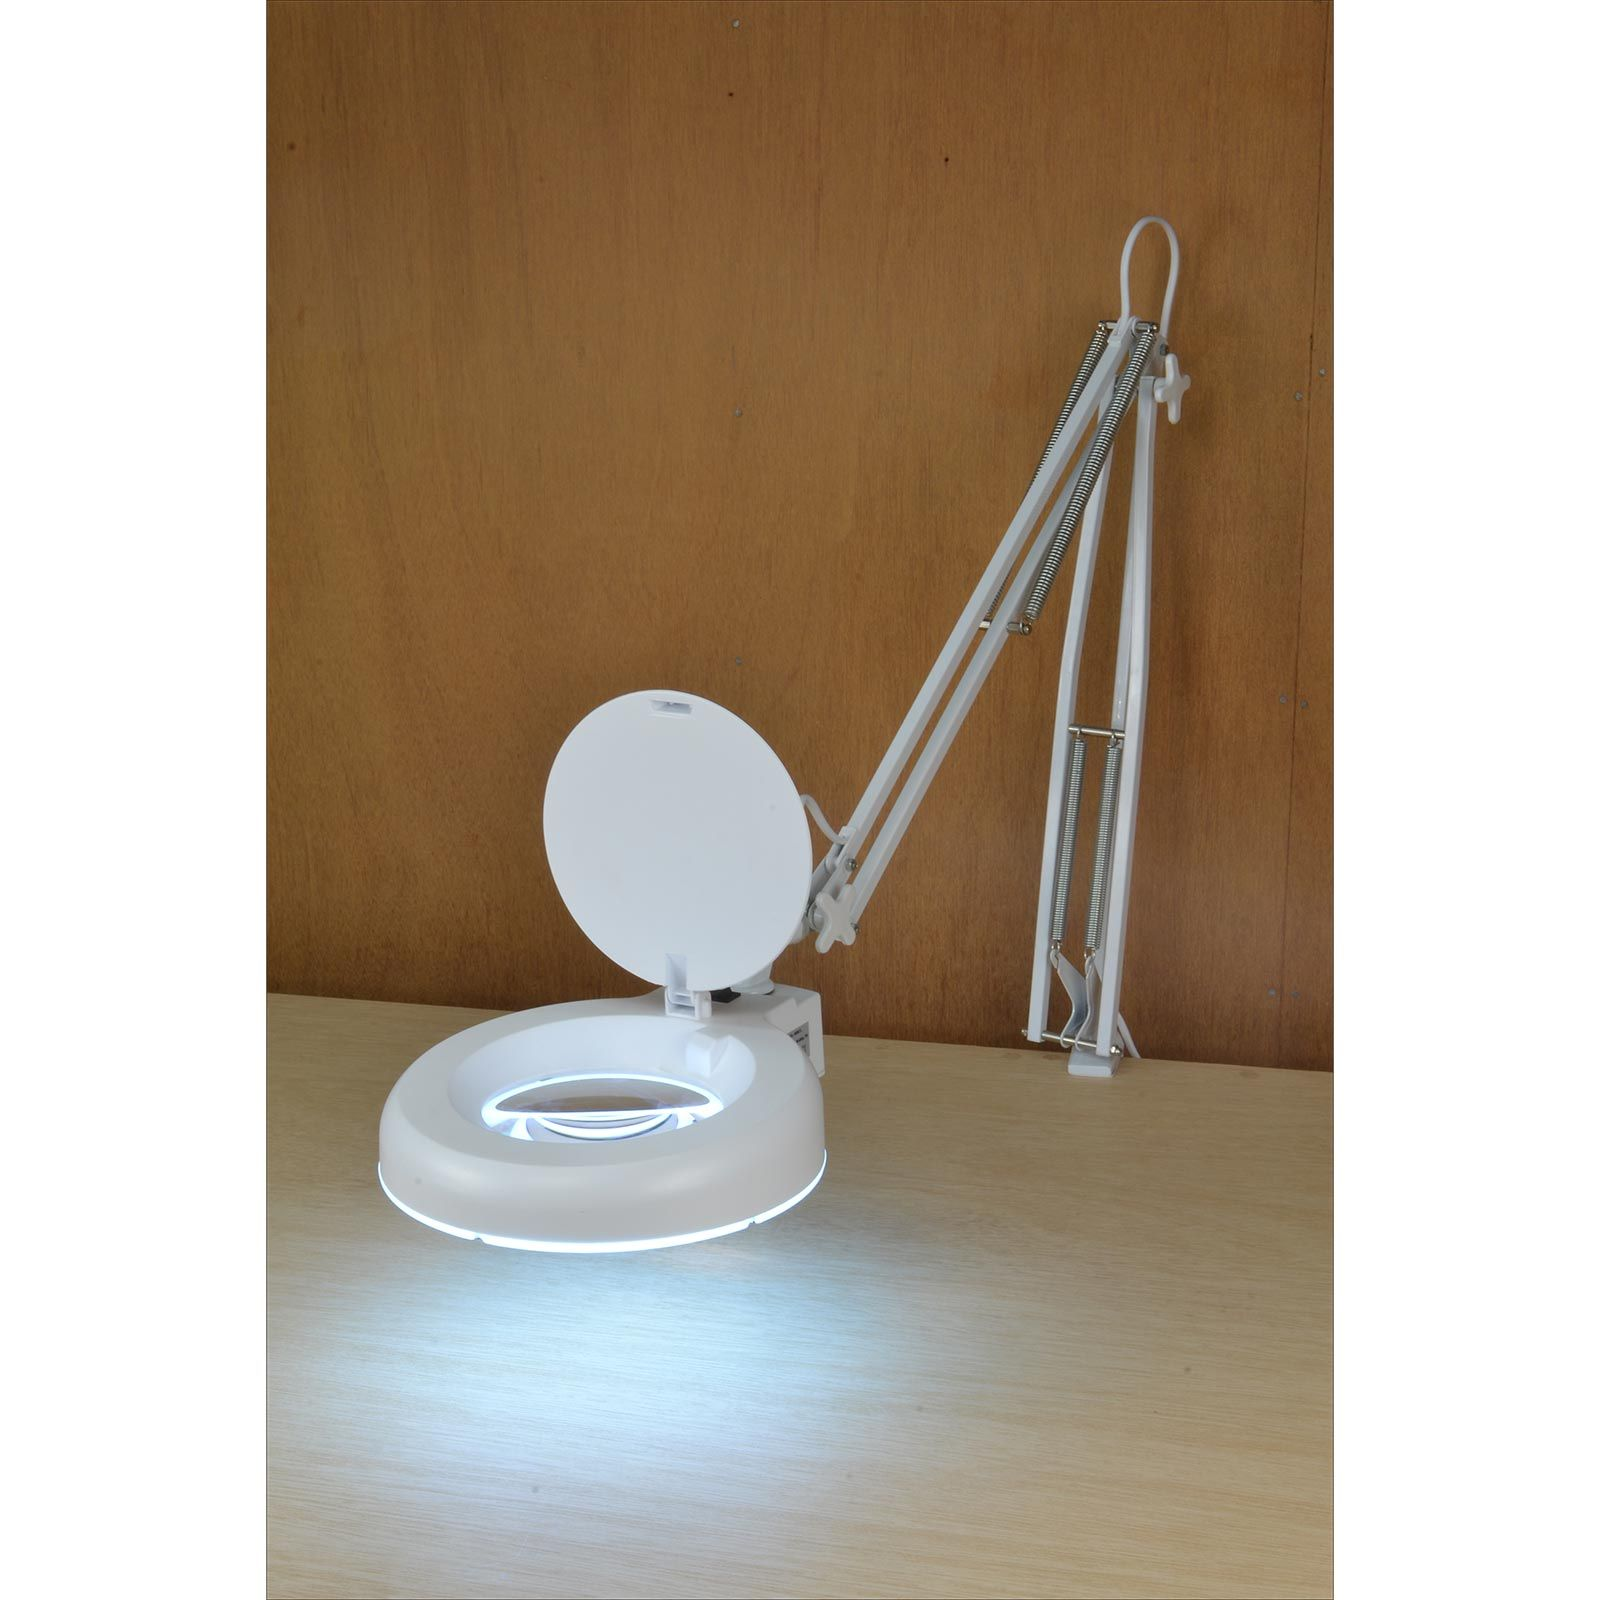 Articulated Led Lamp With Magnifier Magnifier Lamp Lamp Magnifier